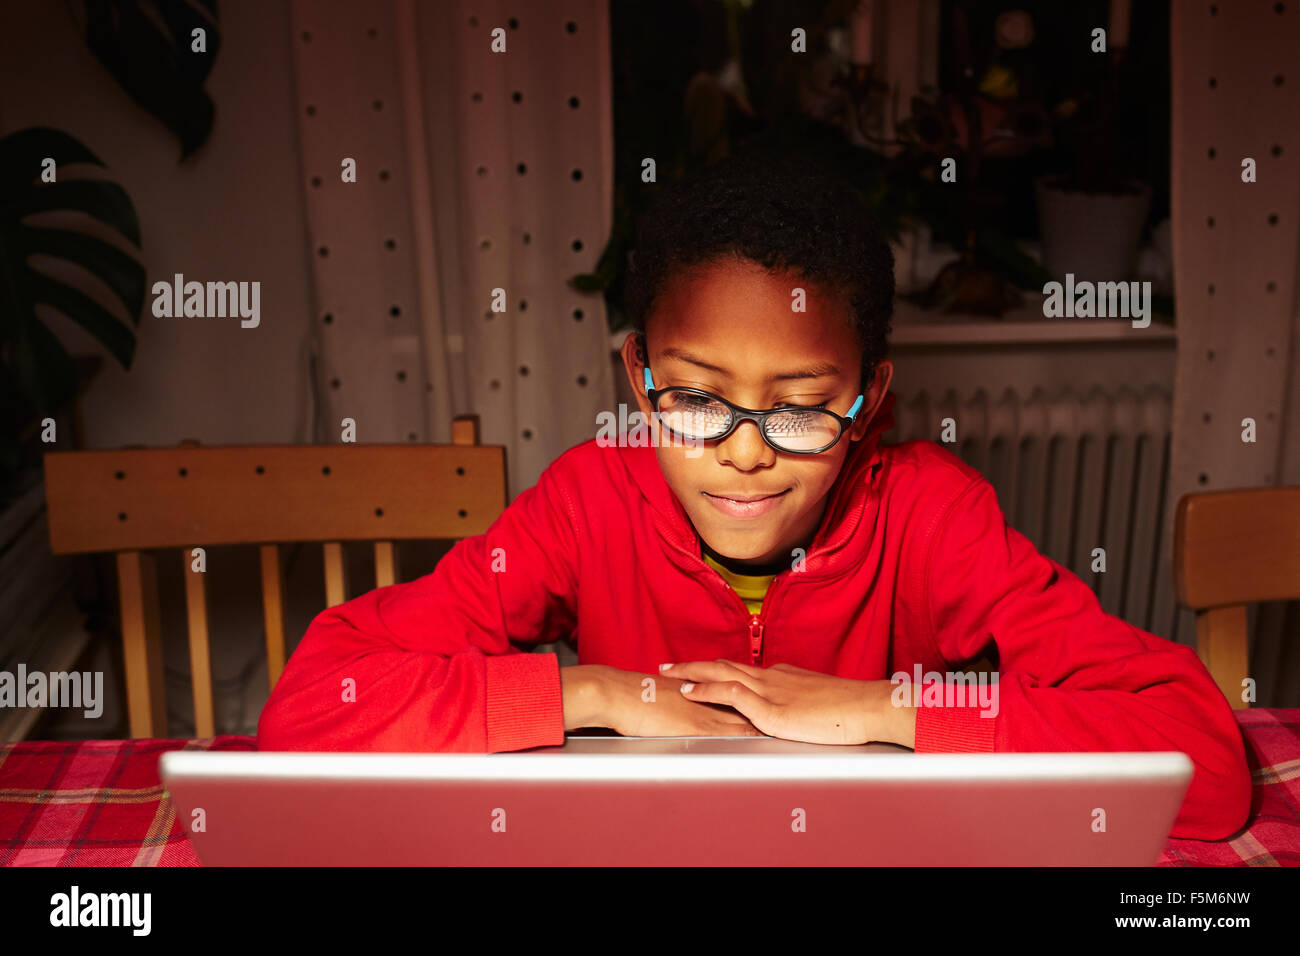 Sweden, Vastra Gotaland, Vastra frolunda, Uppegardsvagen, Boy (10-11) using laptop - Stock Image